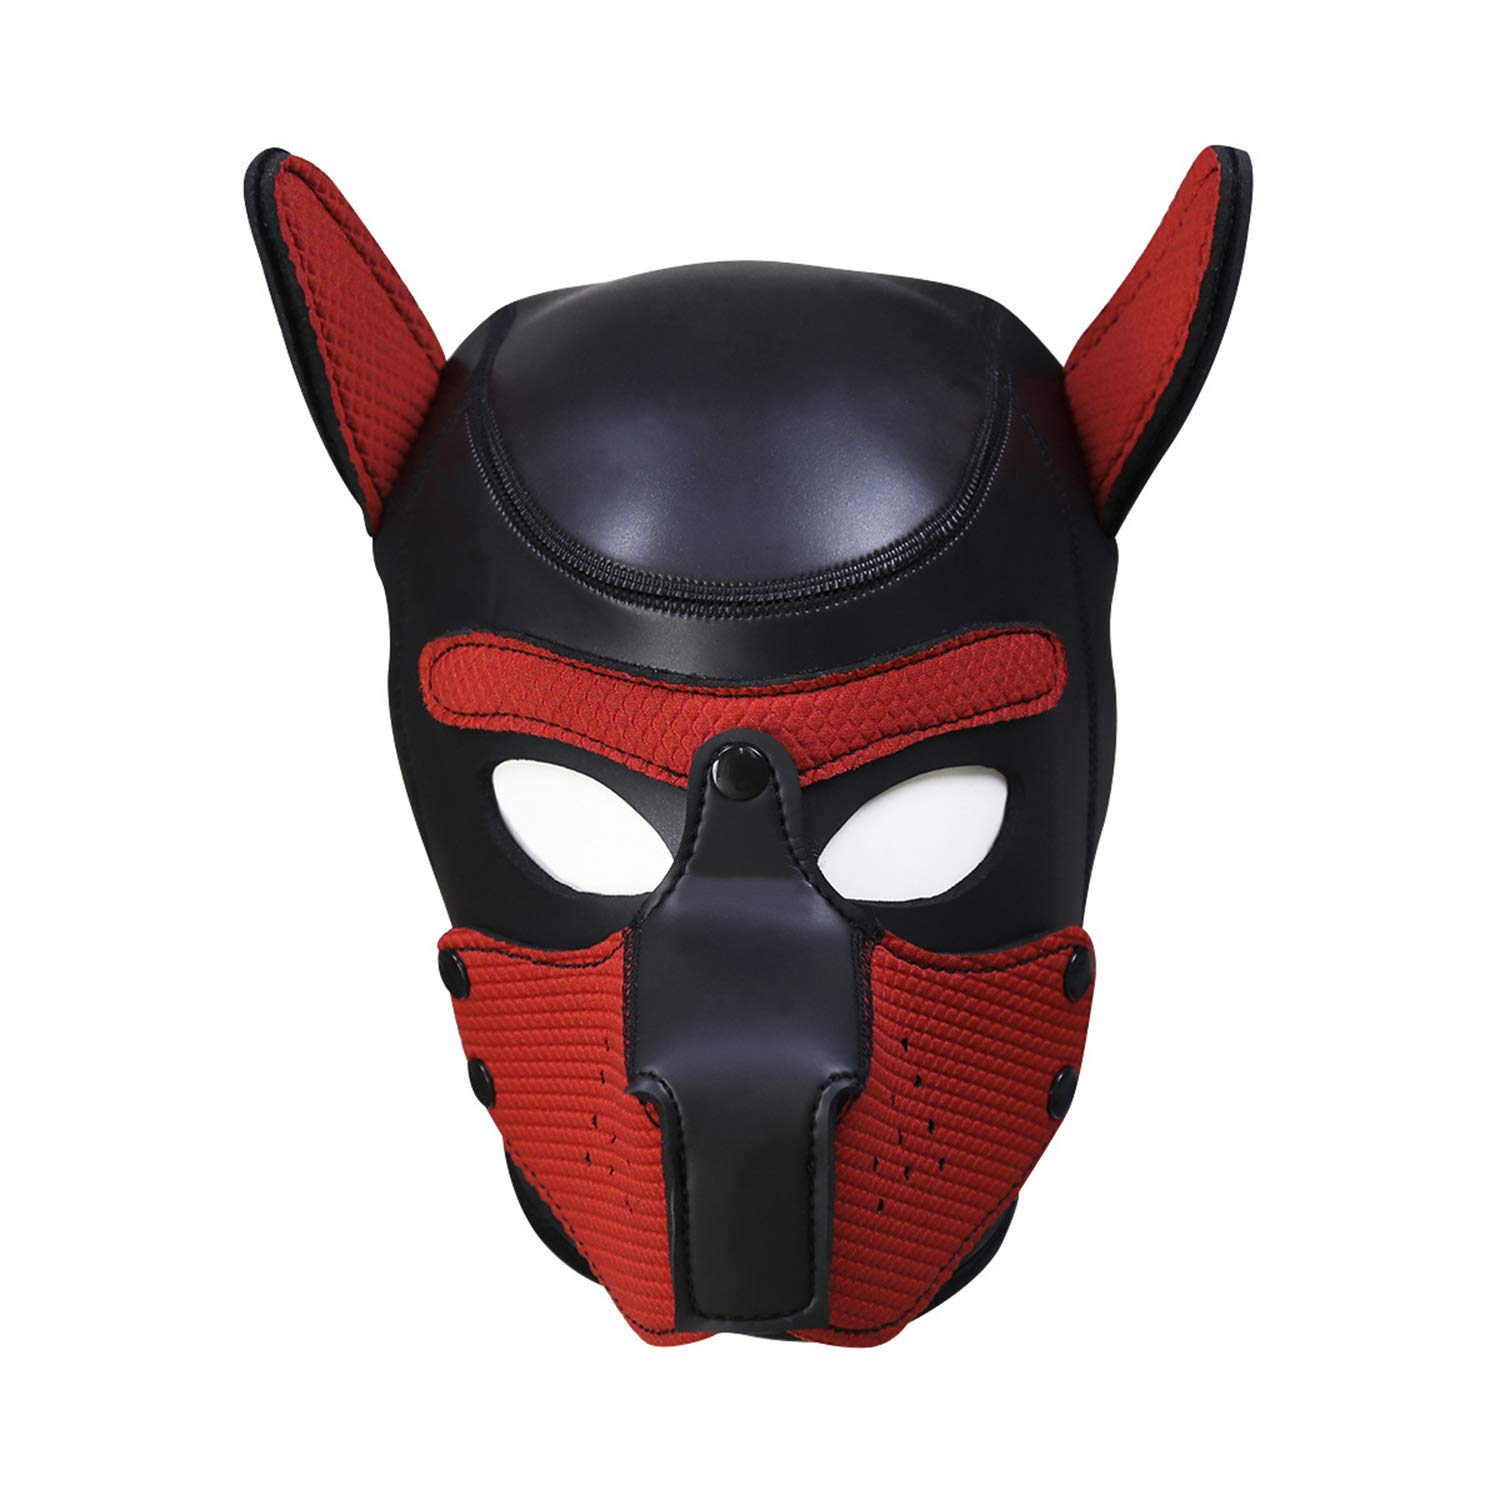 Dog Head Masks Costume Party Puppy Hood Cosplay Neoprene Animal Face Cover Blindfold Breathable